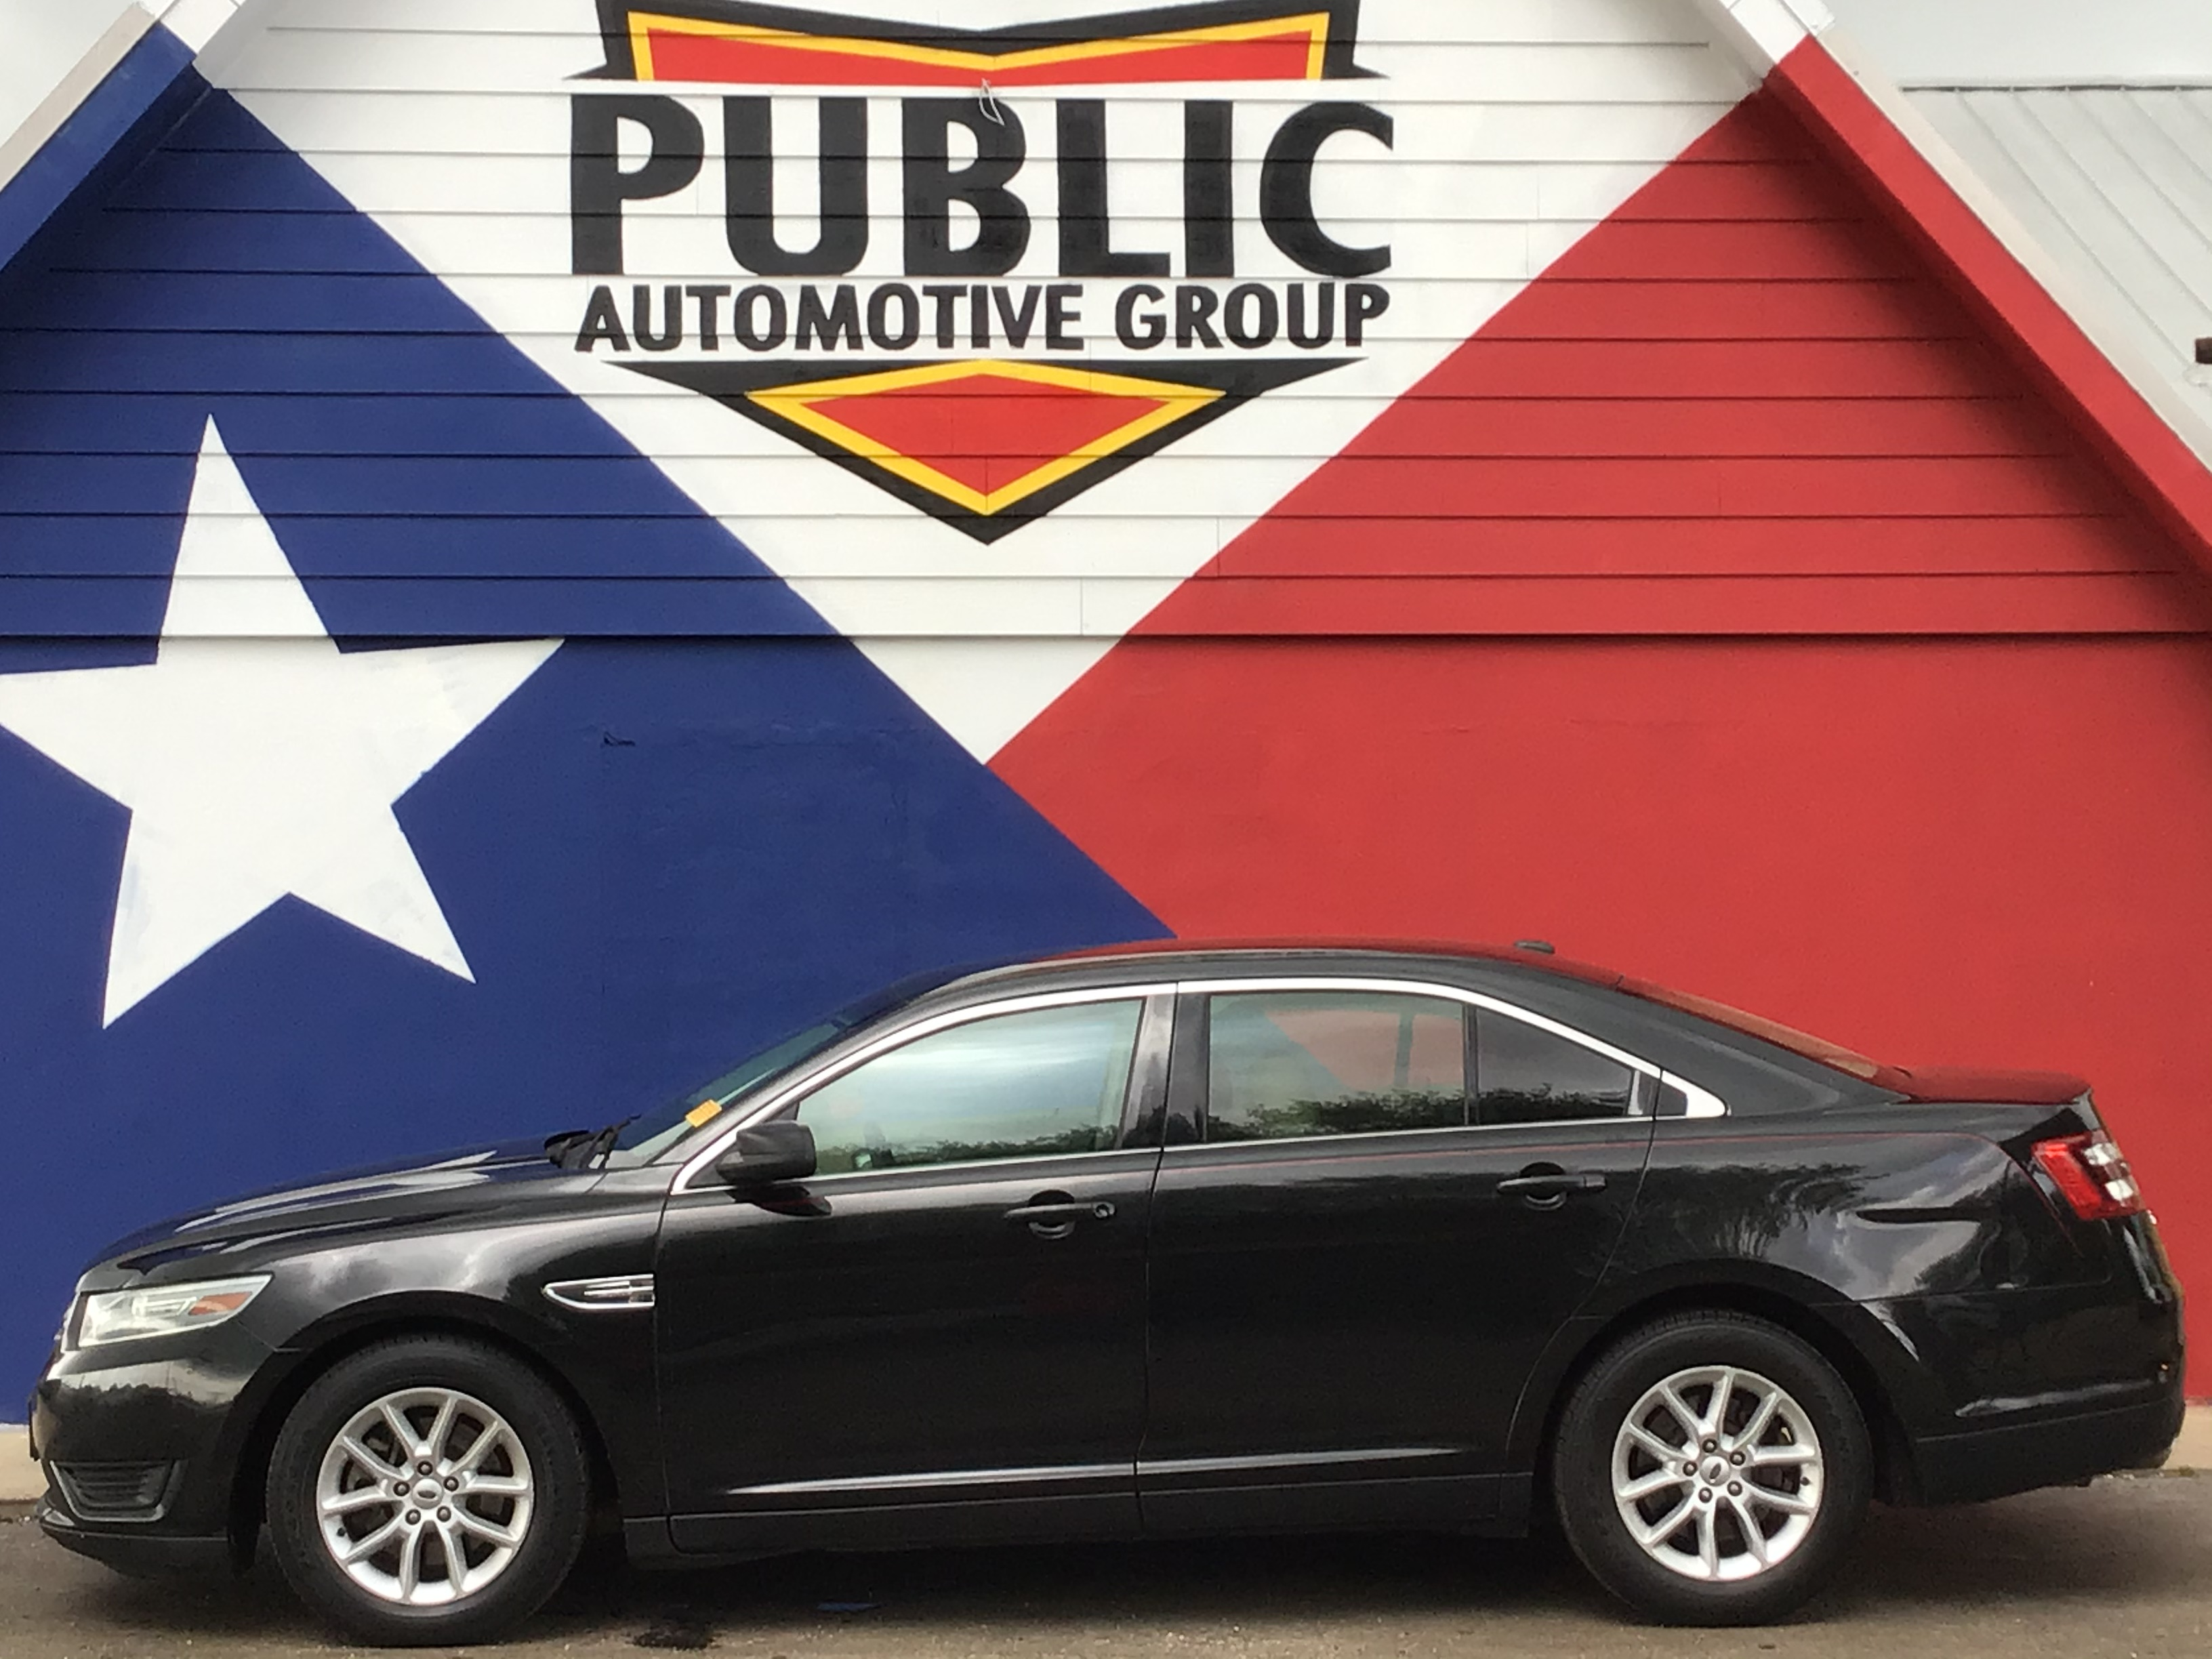 used vehicle - Sedan FORD TAURUS 2013